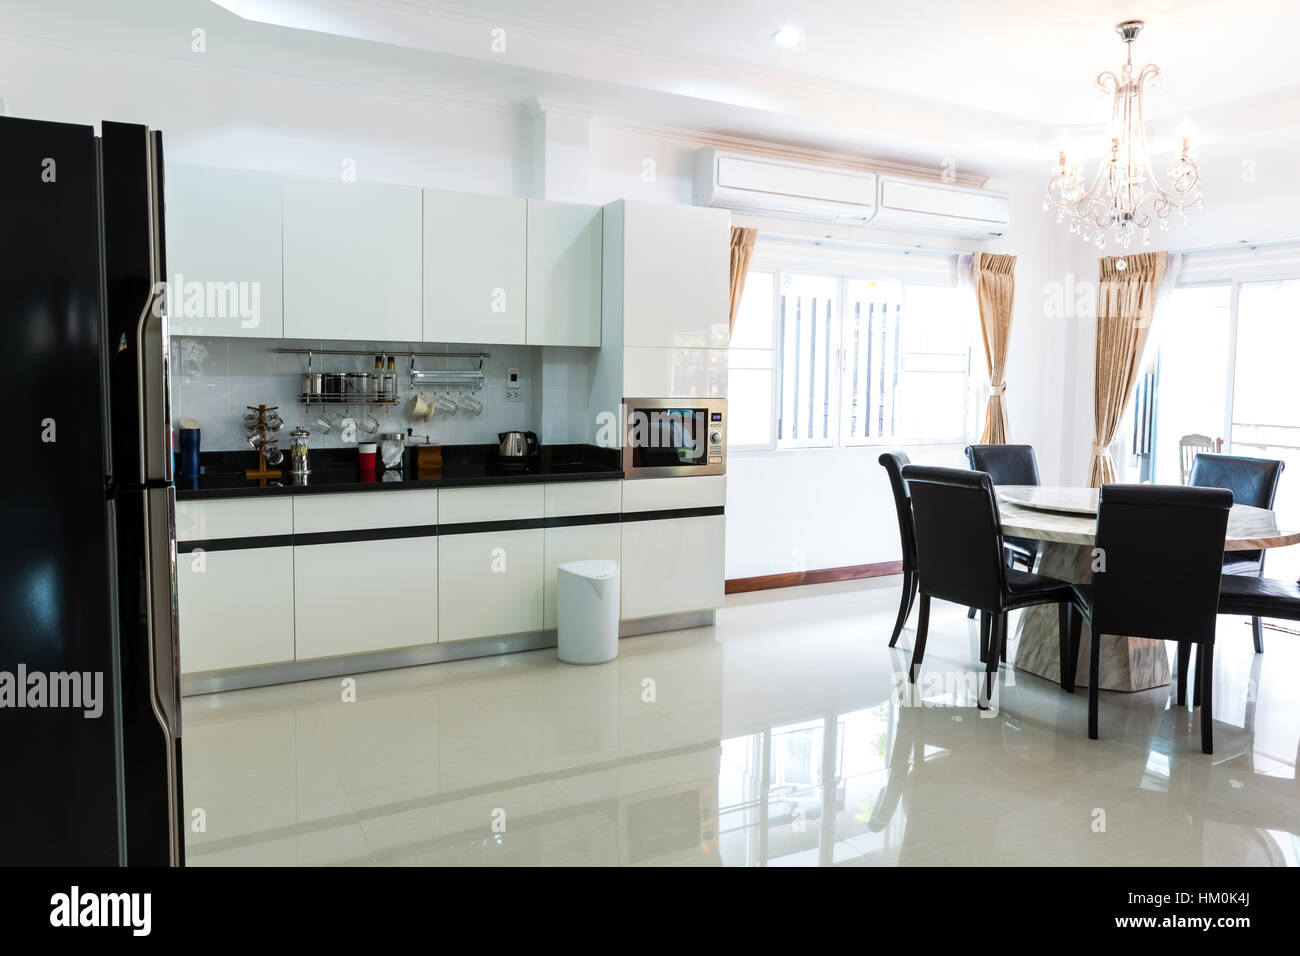 Kitchen cabinets with coffee corner in modern home living room Stock ...